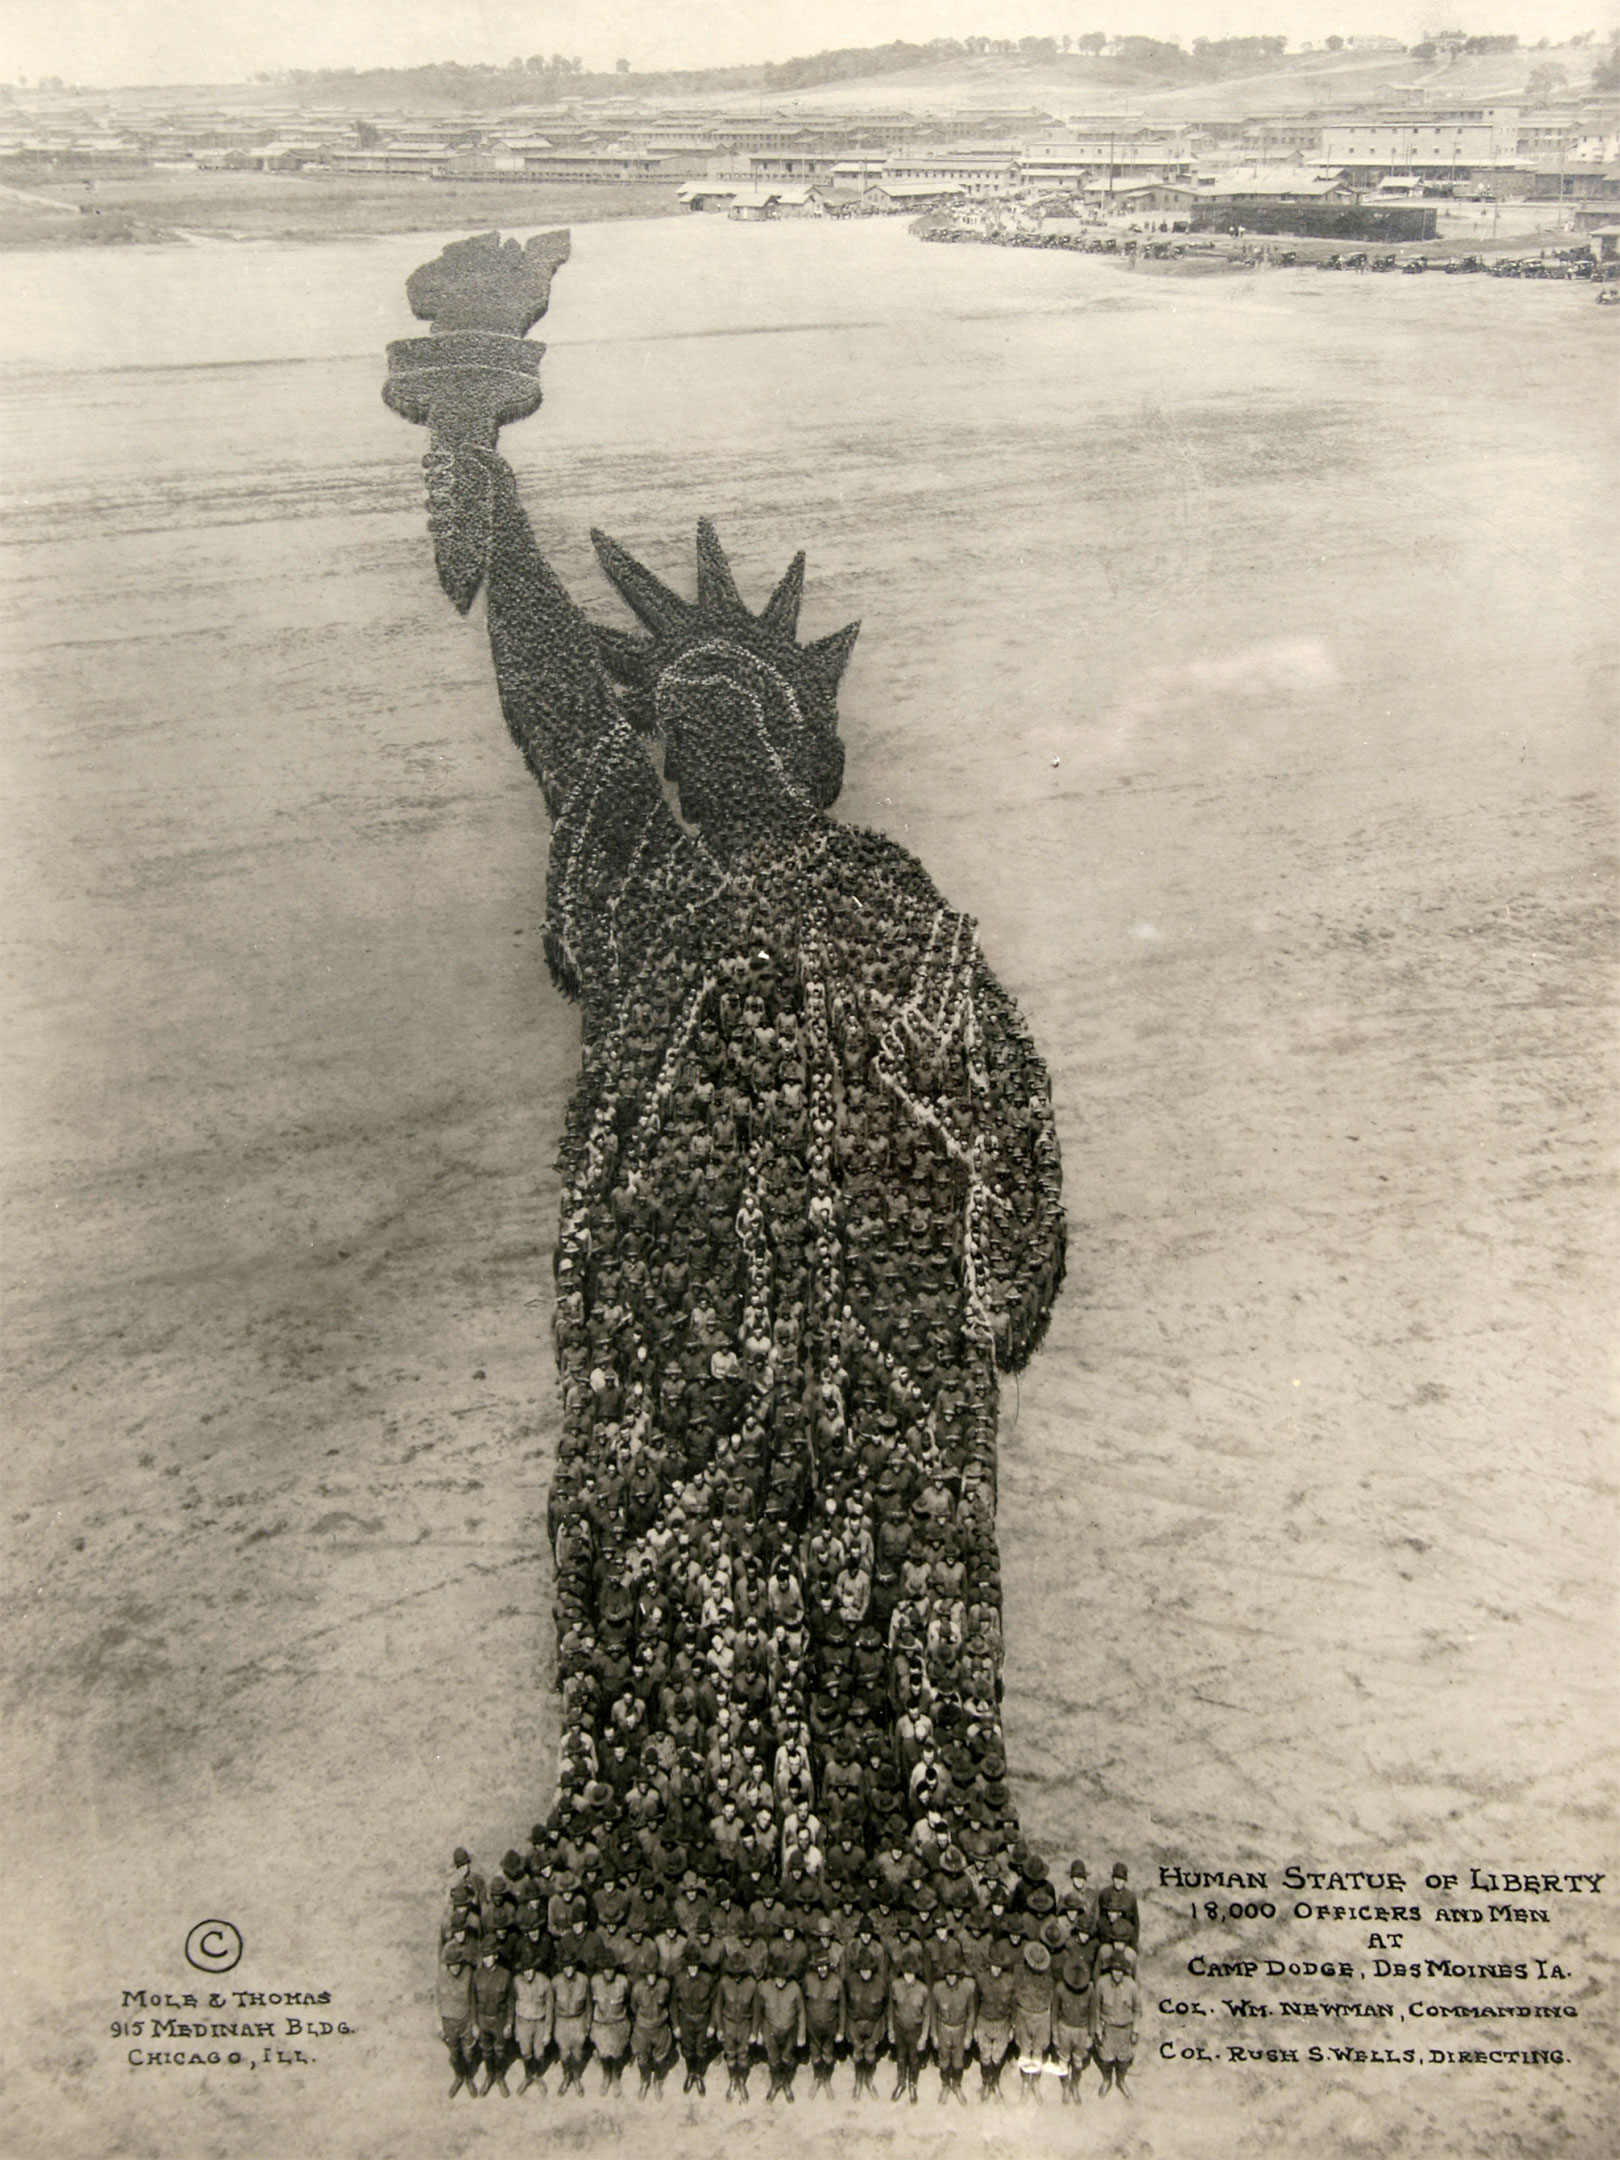 Mole & Thomas 'Human Statue of Liberty' photograph formed by 18,000 officers and enlisted men at Camp Dodge, Des Moines, Iowa. Ross Art Group image.